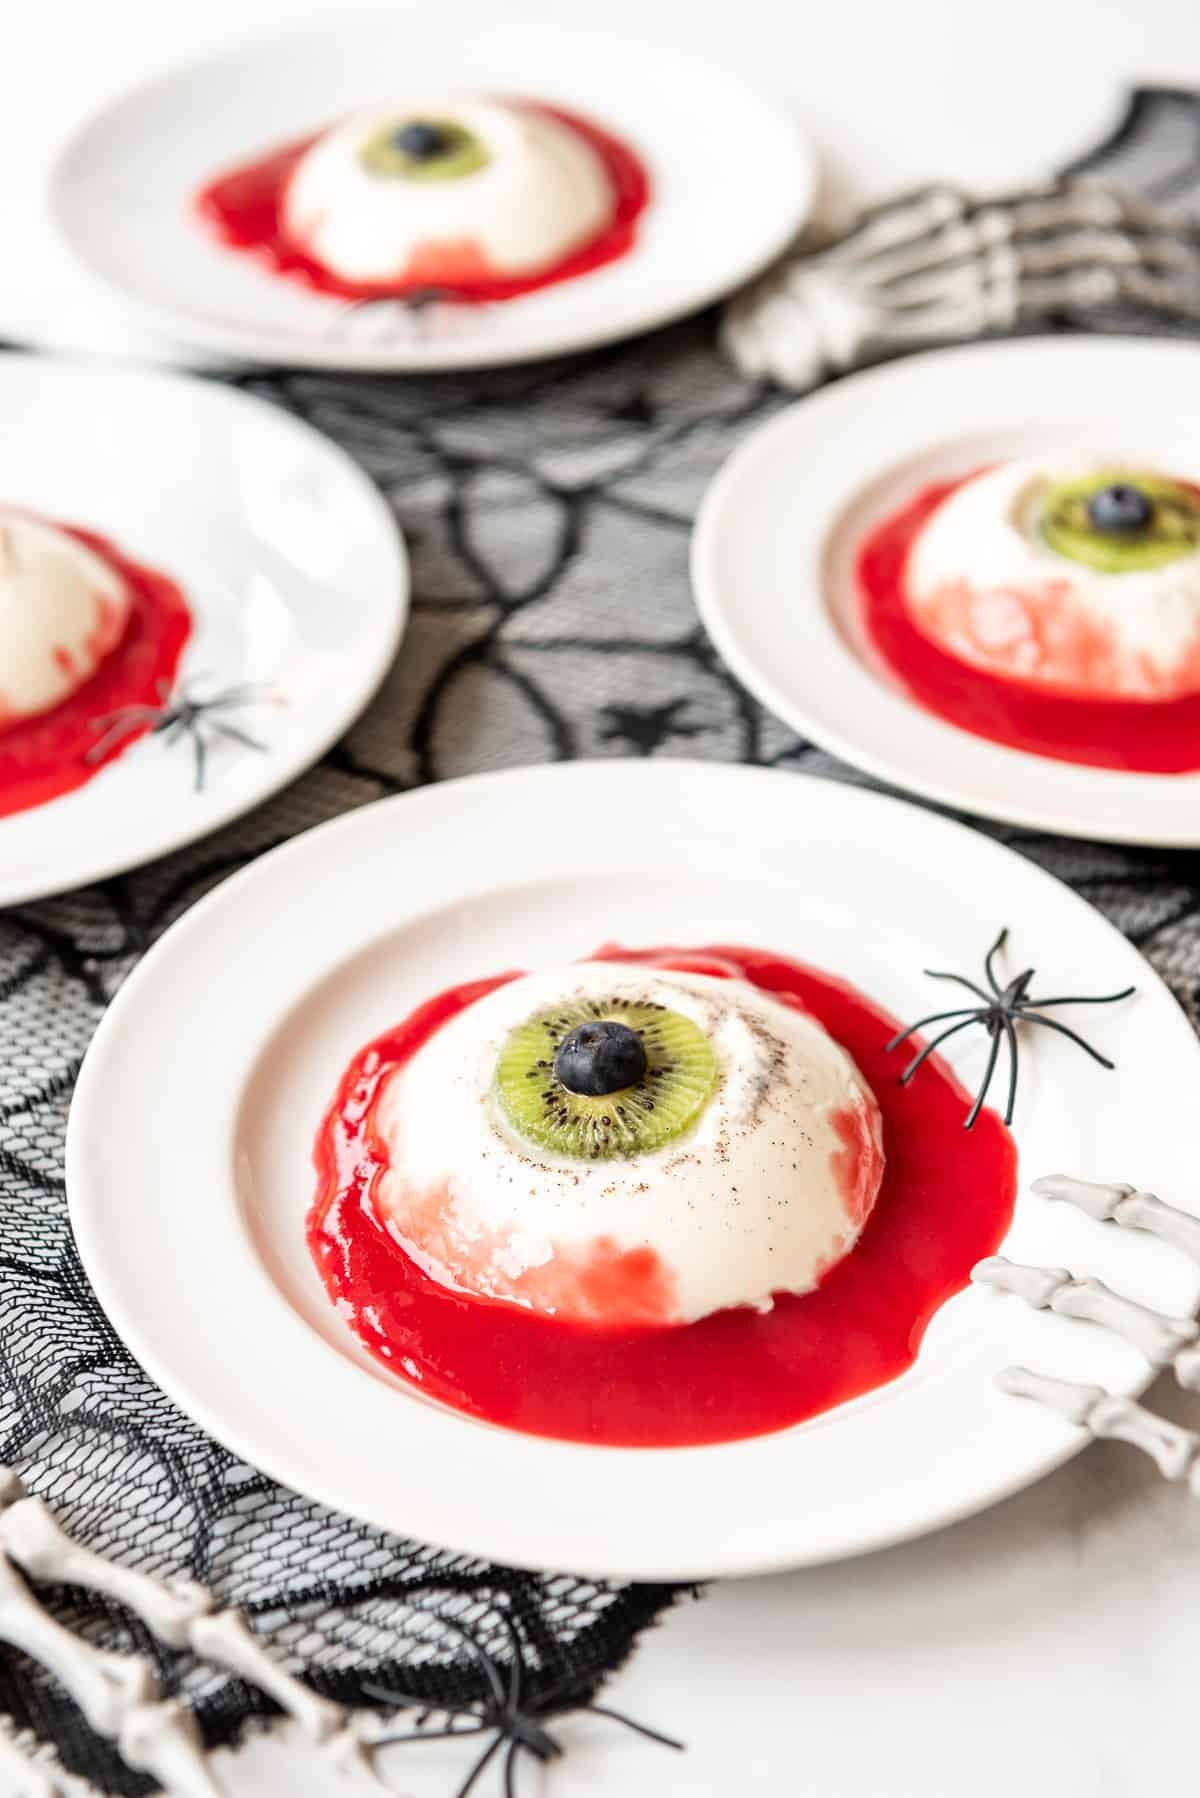 a spooky eyeball dessert made from panna cotta, kiwis, and raspberry coulis on white plates.